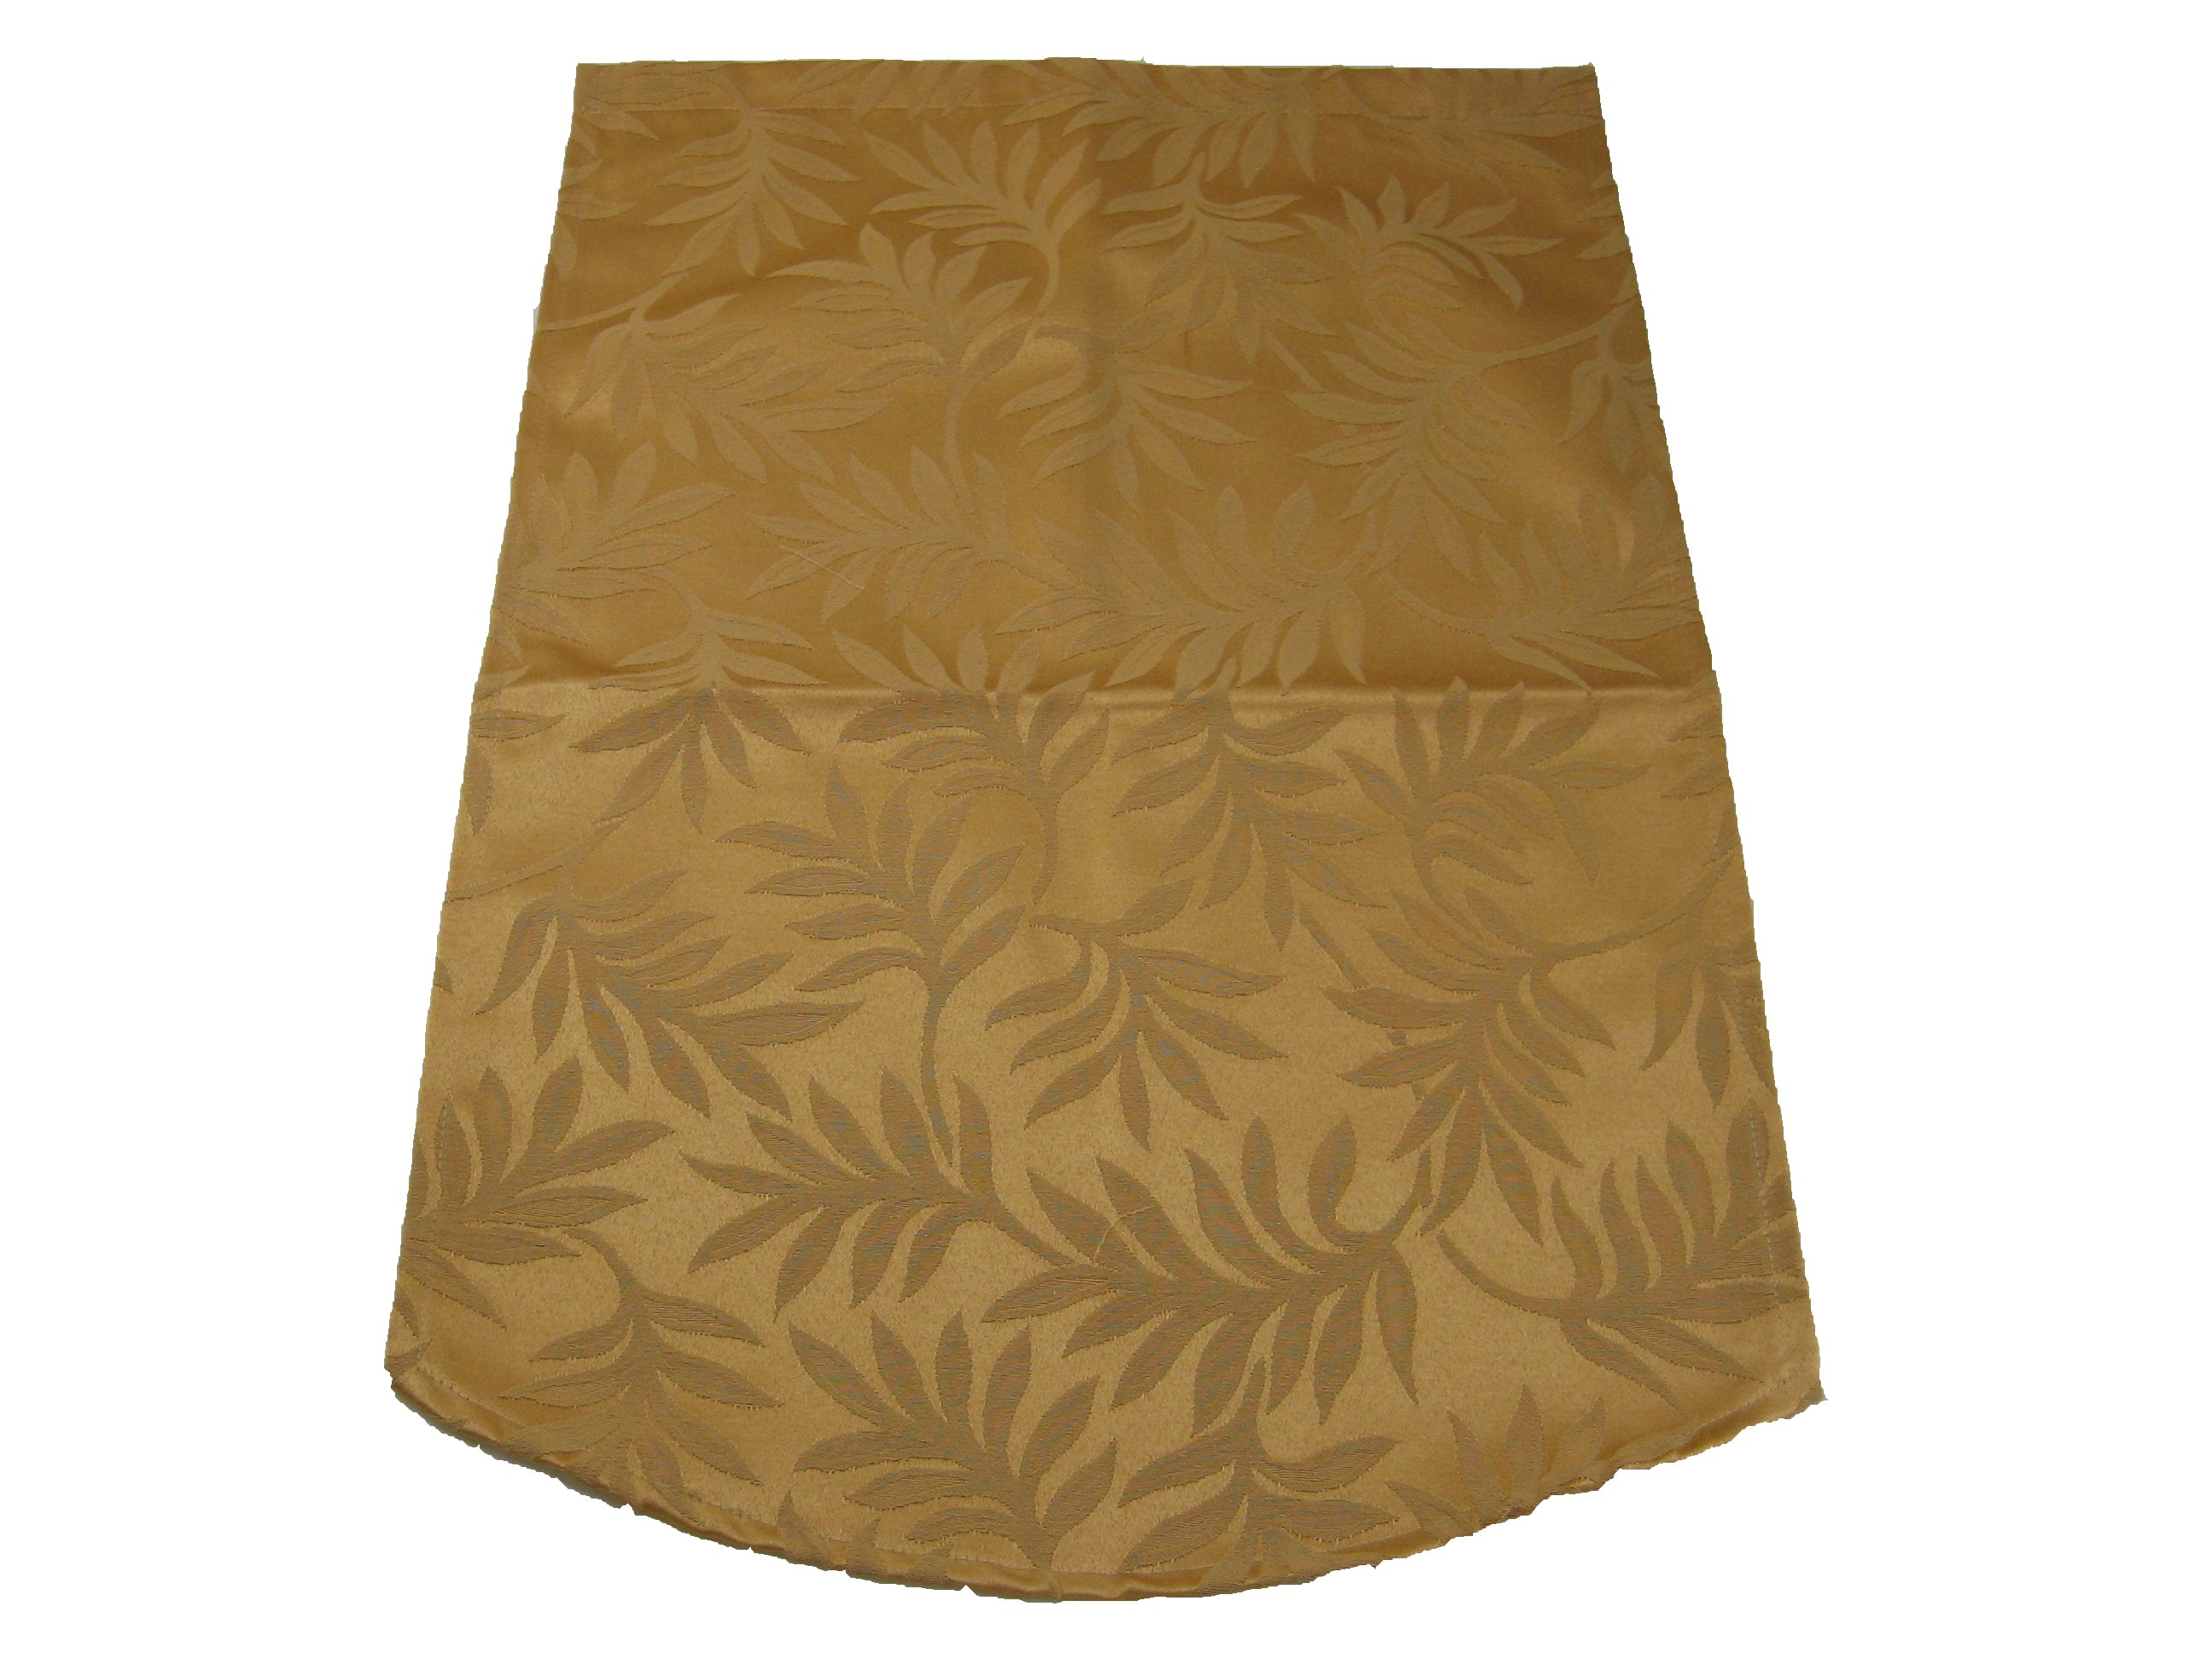 Decorative Chair Back Cover Gold Antimacassar